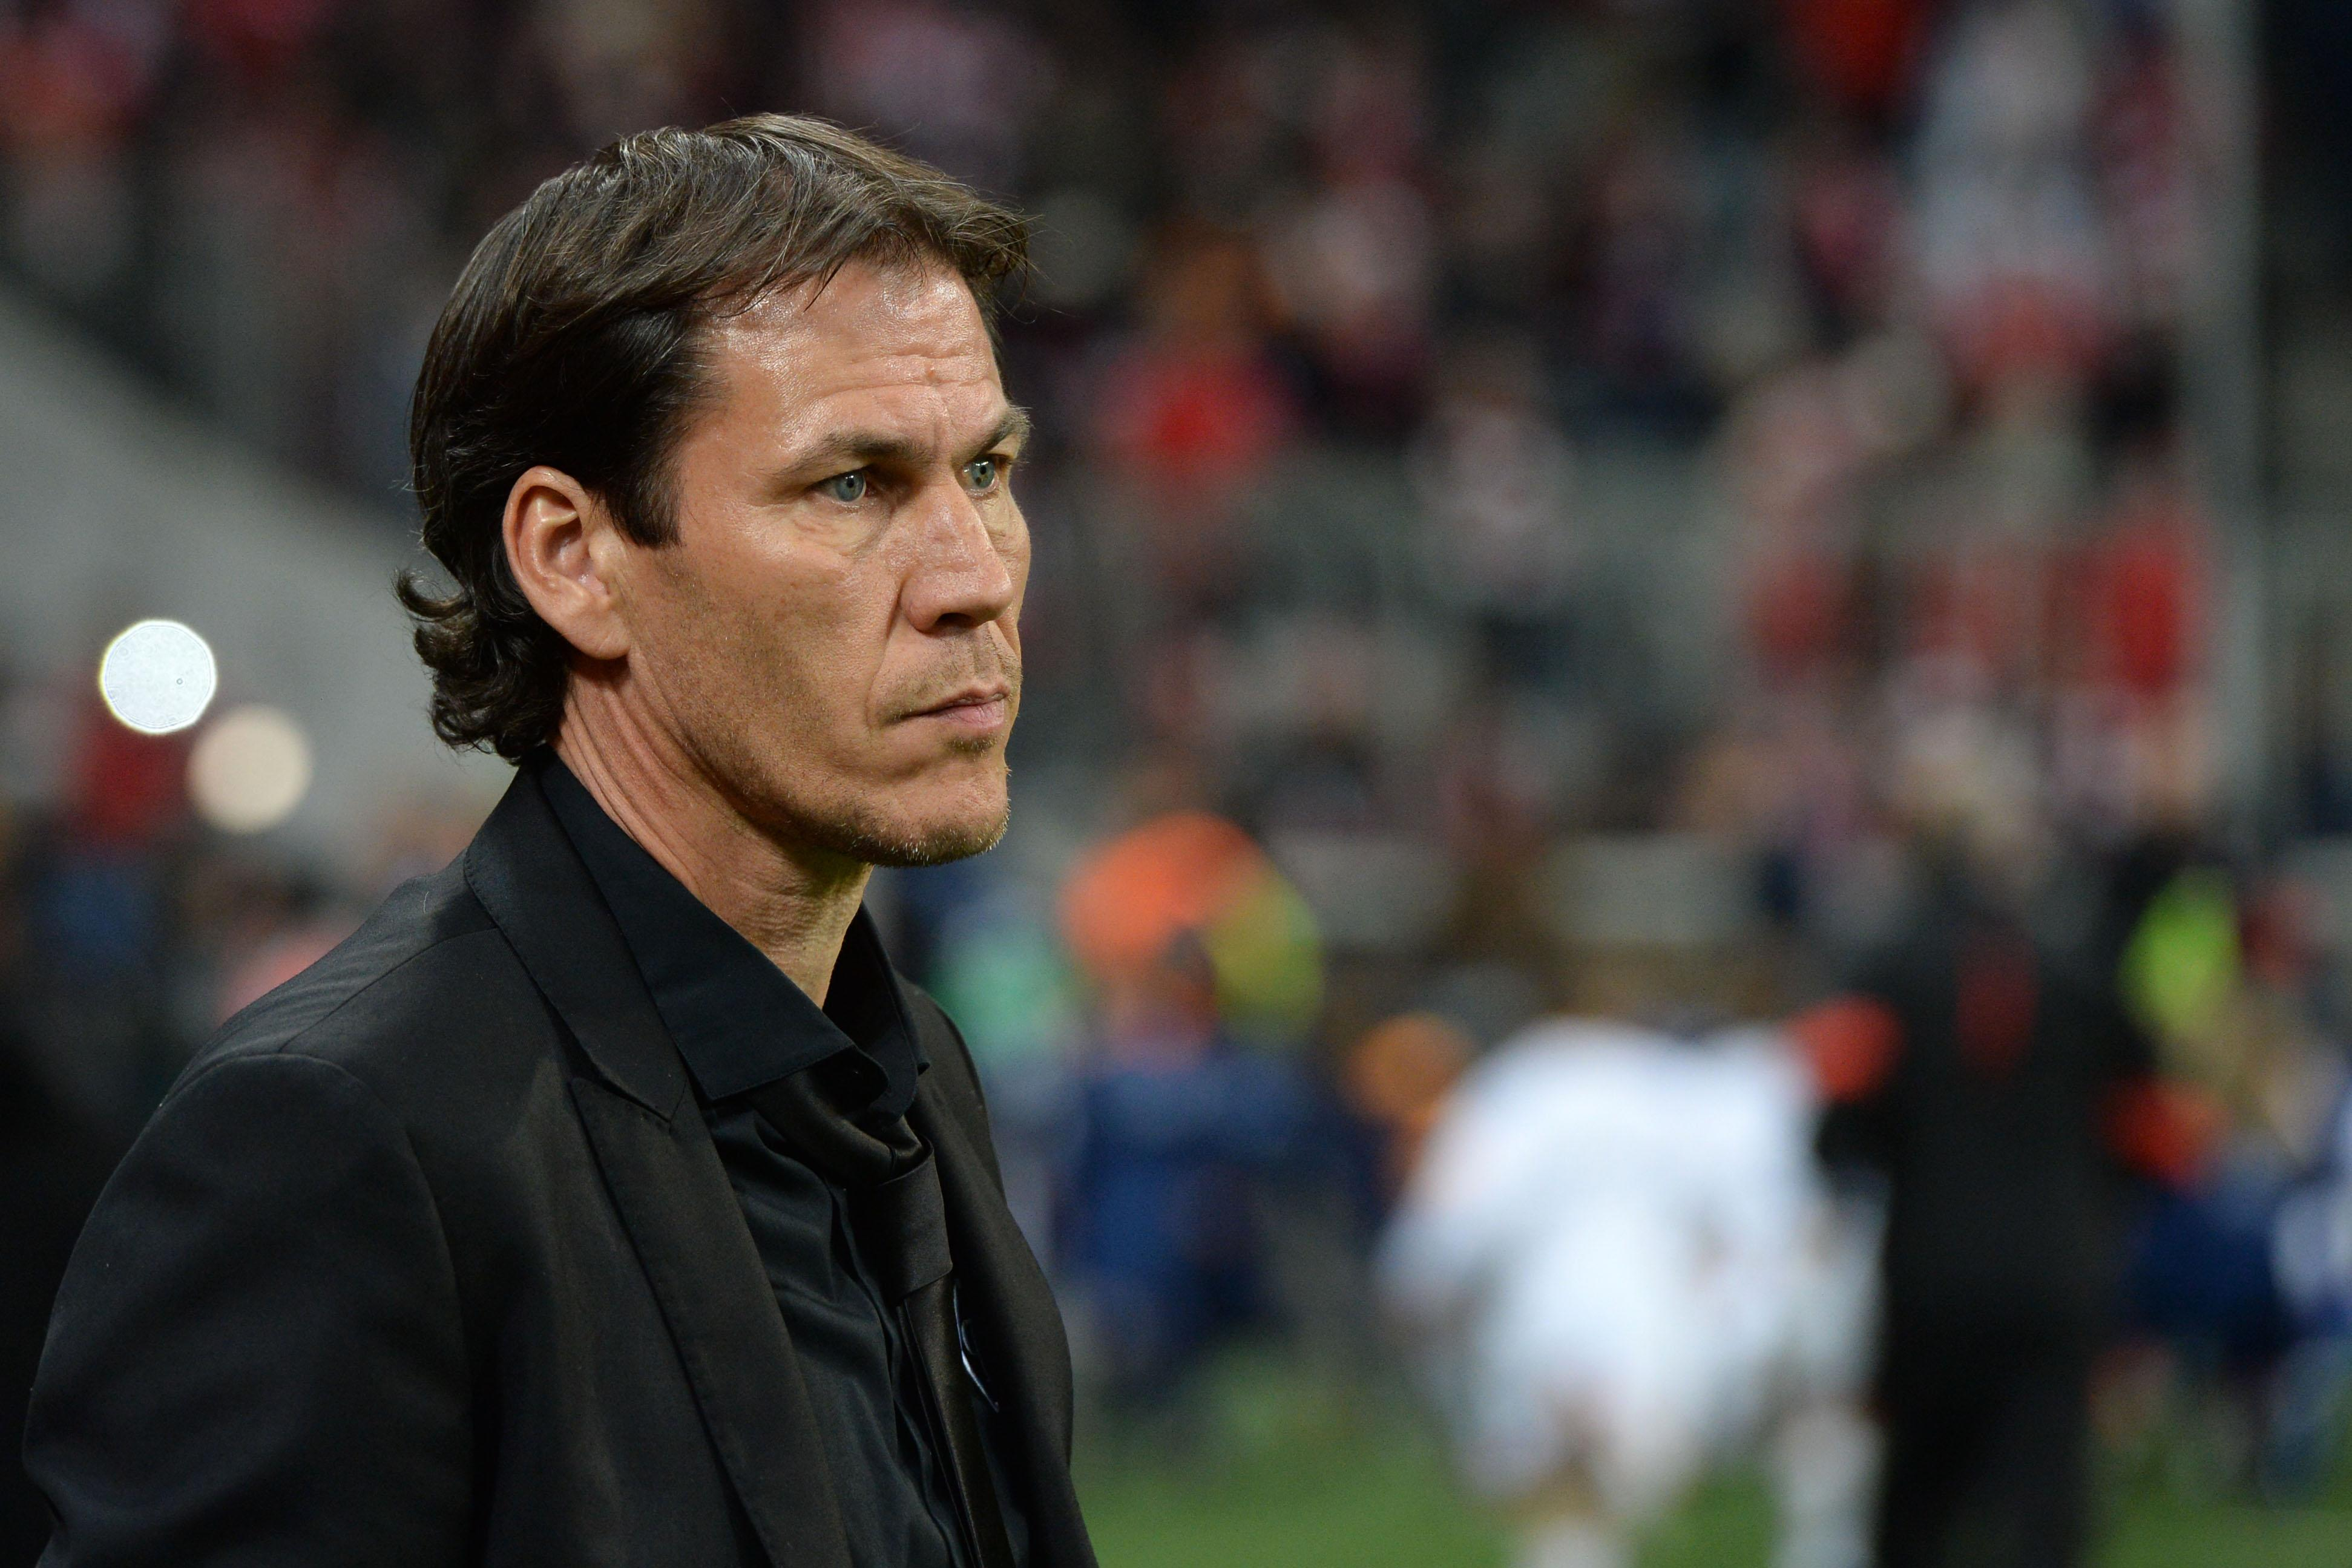 Roma slam Garcia sanction, Juve appeal Allegri ban